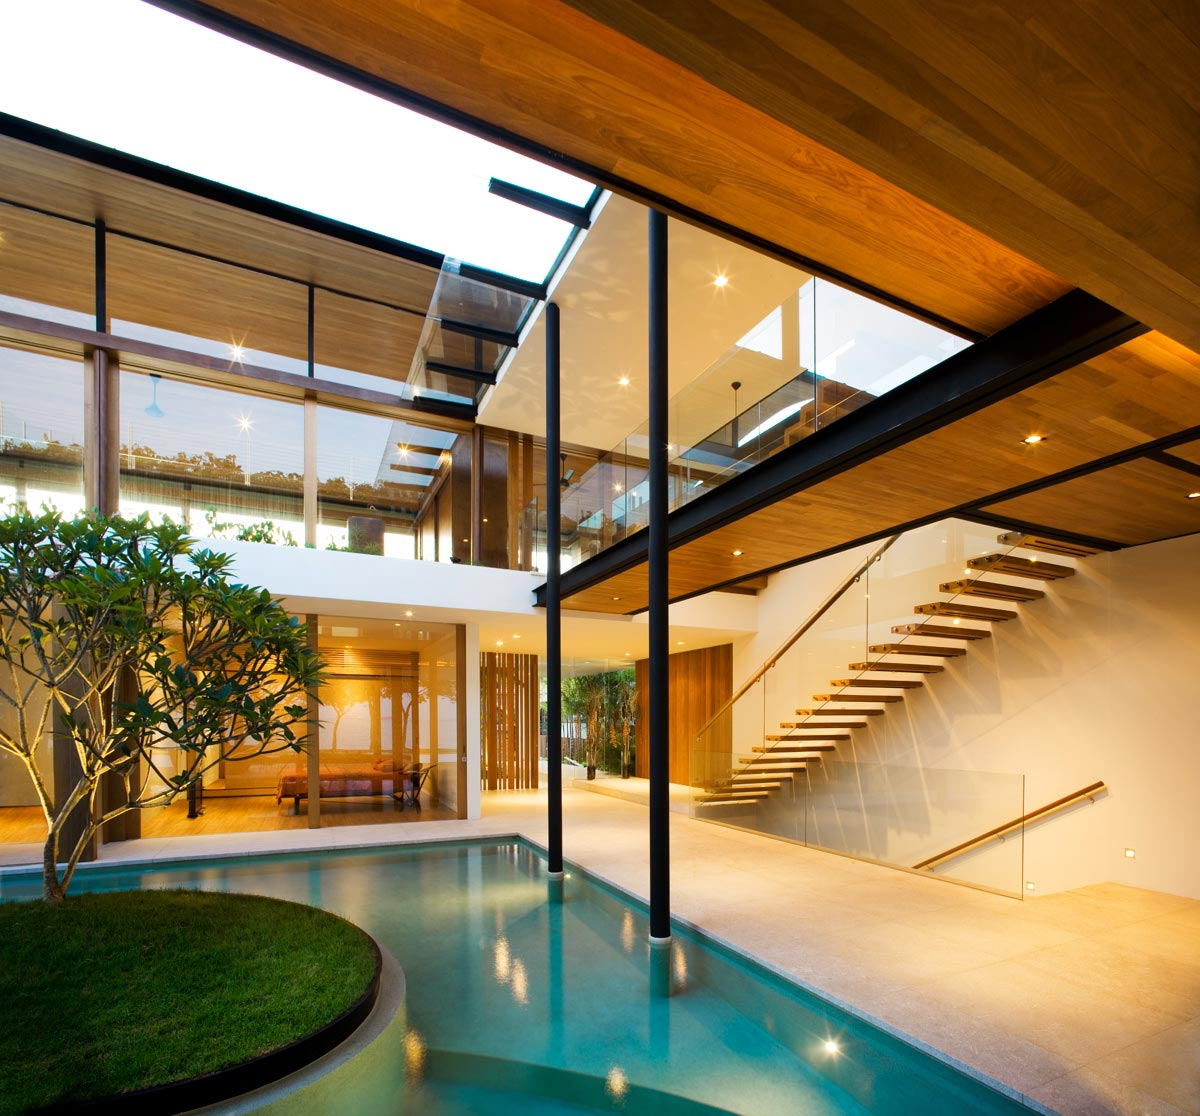 Pool, Glass & Wood Stairs, Stunning Beachfront Home with Under-Pool Media Room